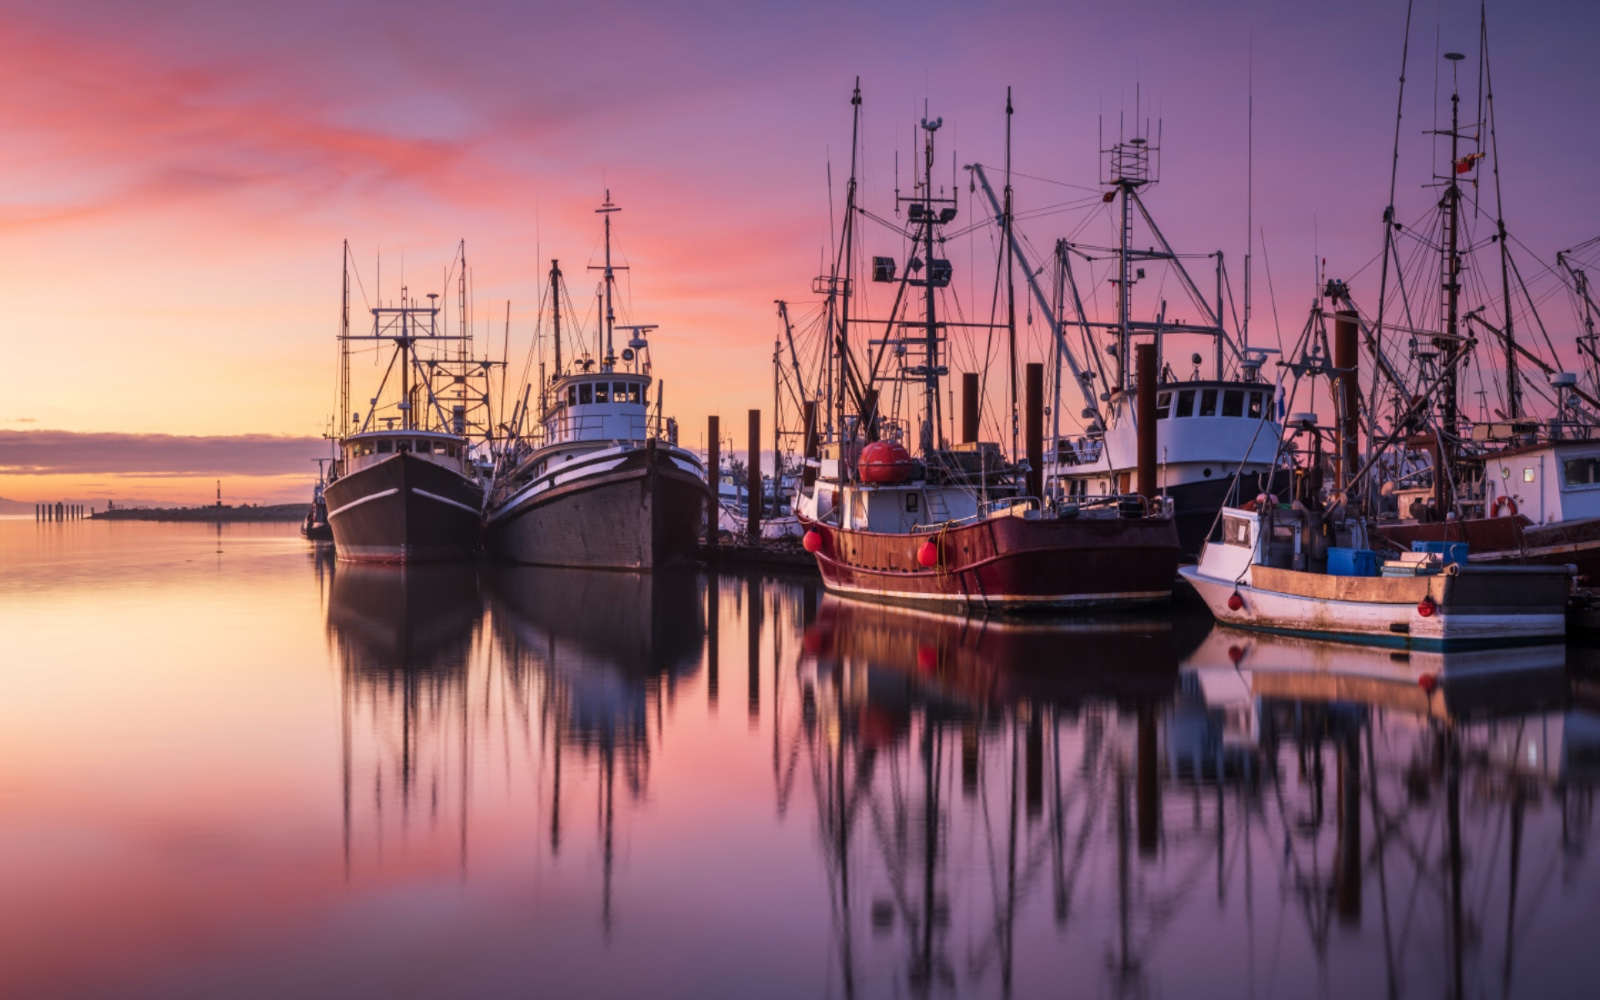 Fishing boats sit in the harbour at dusk, Steveston BC